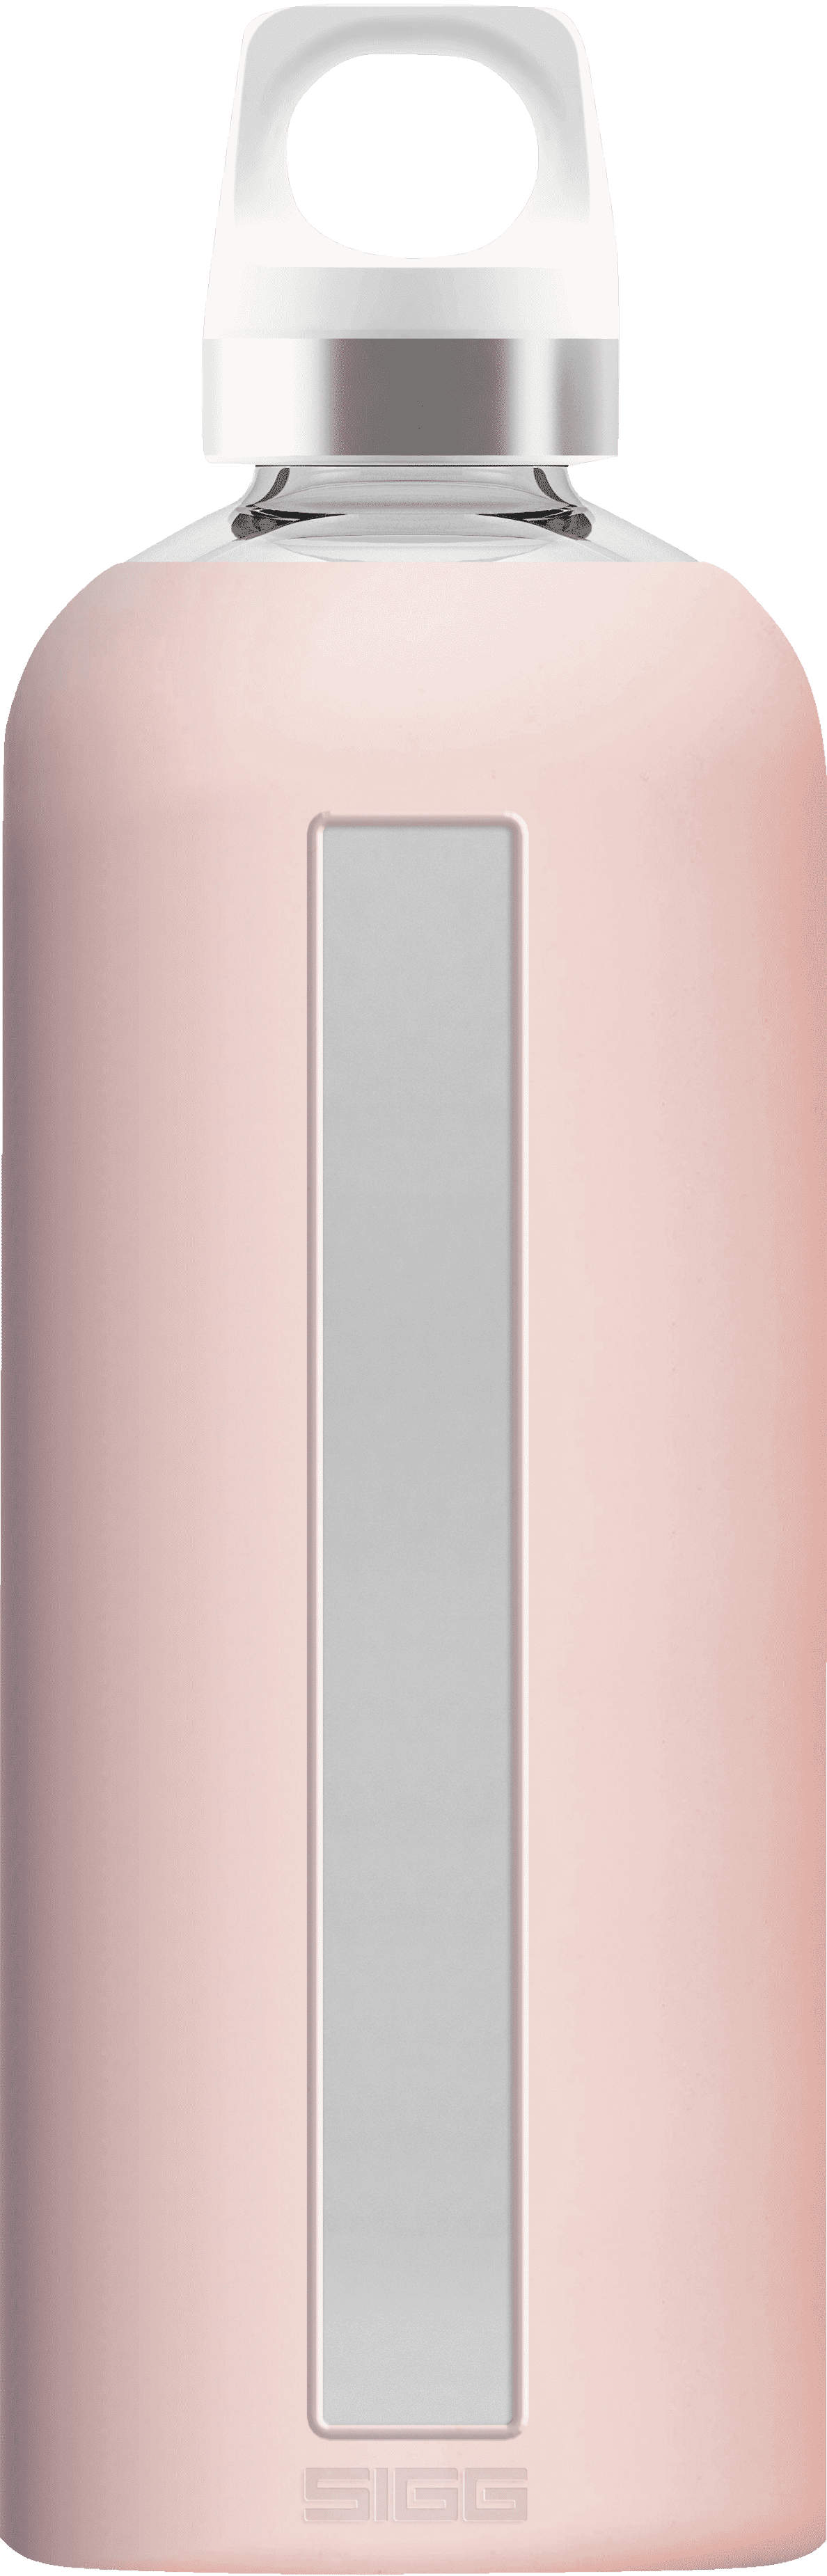 SIGG  8648.4 Star Blush Trinkflasche in Beige | 07610465864845